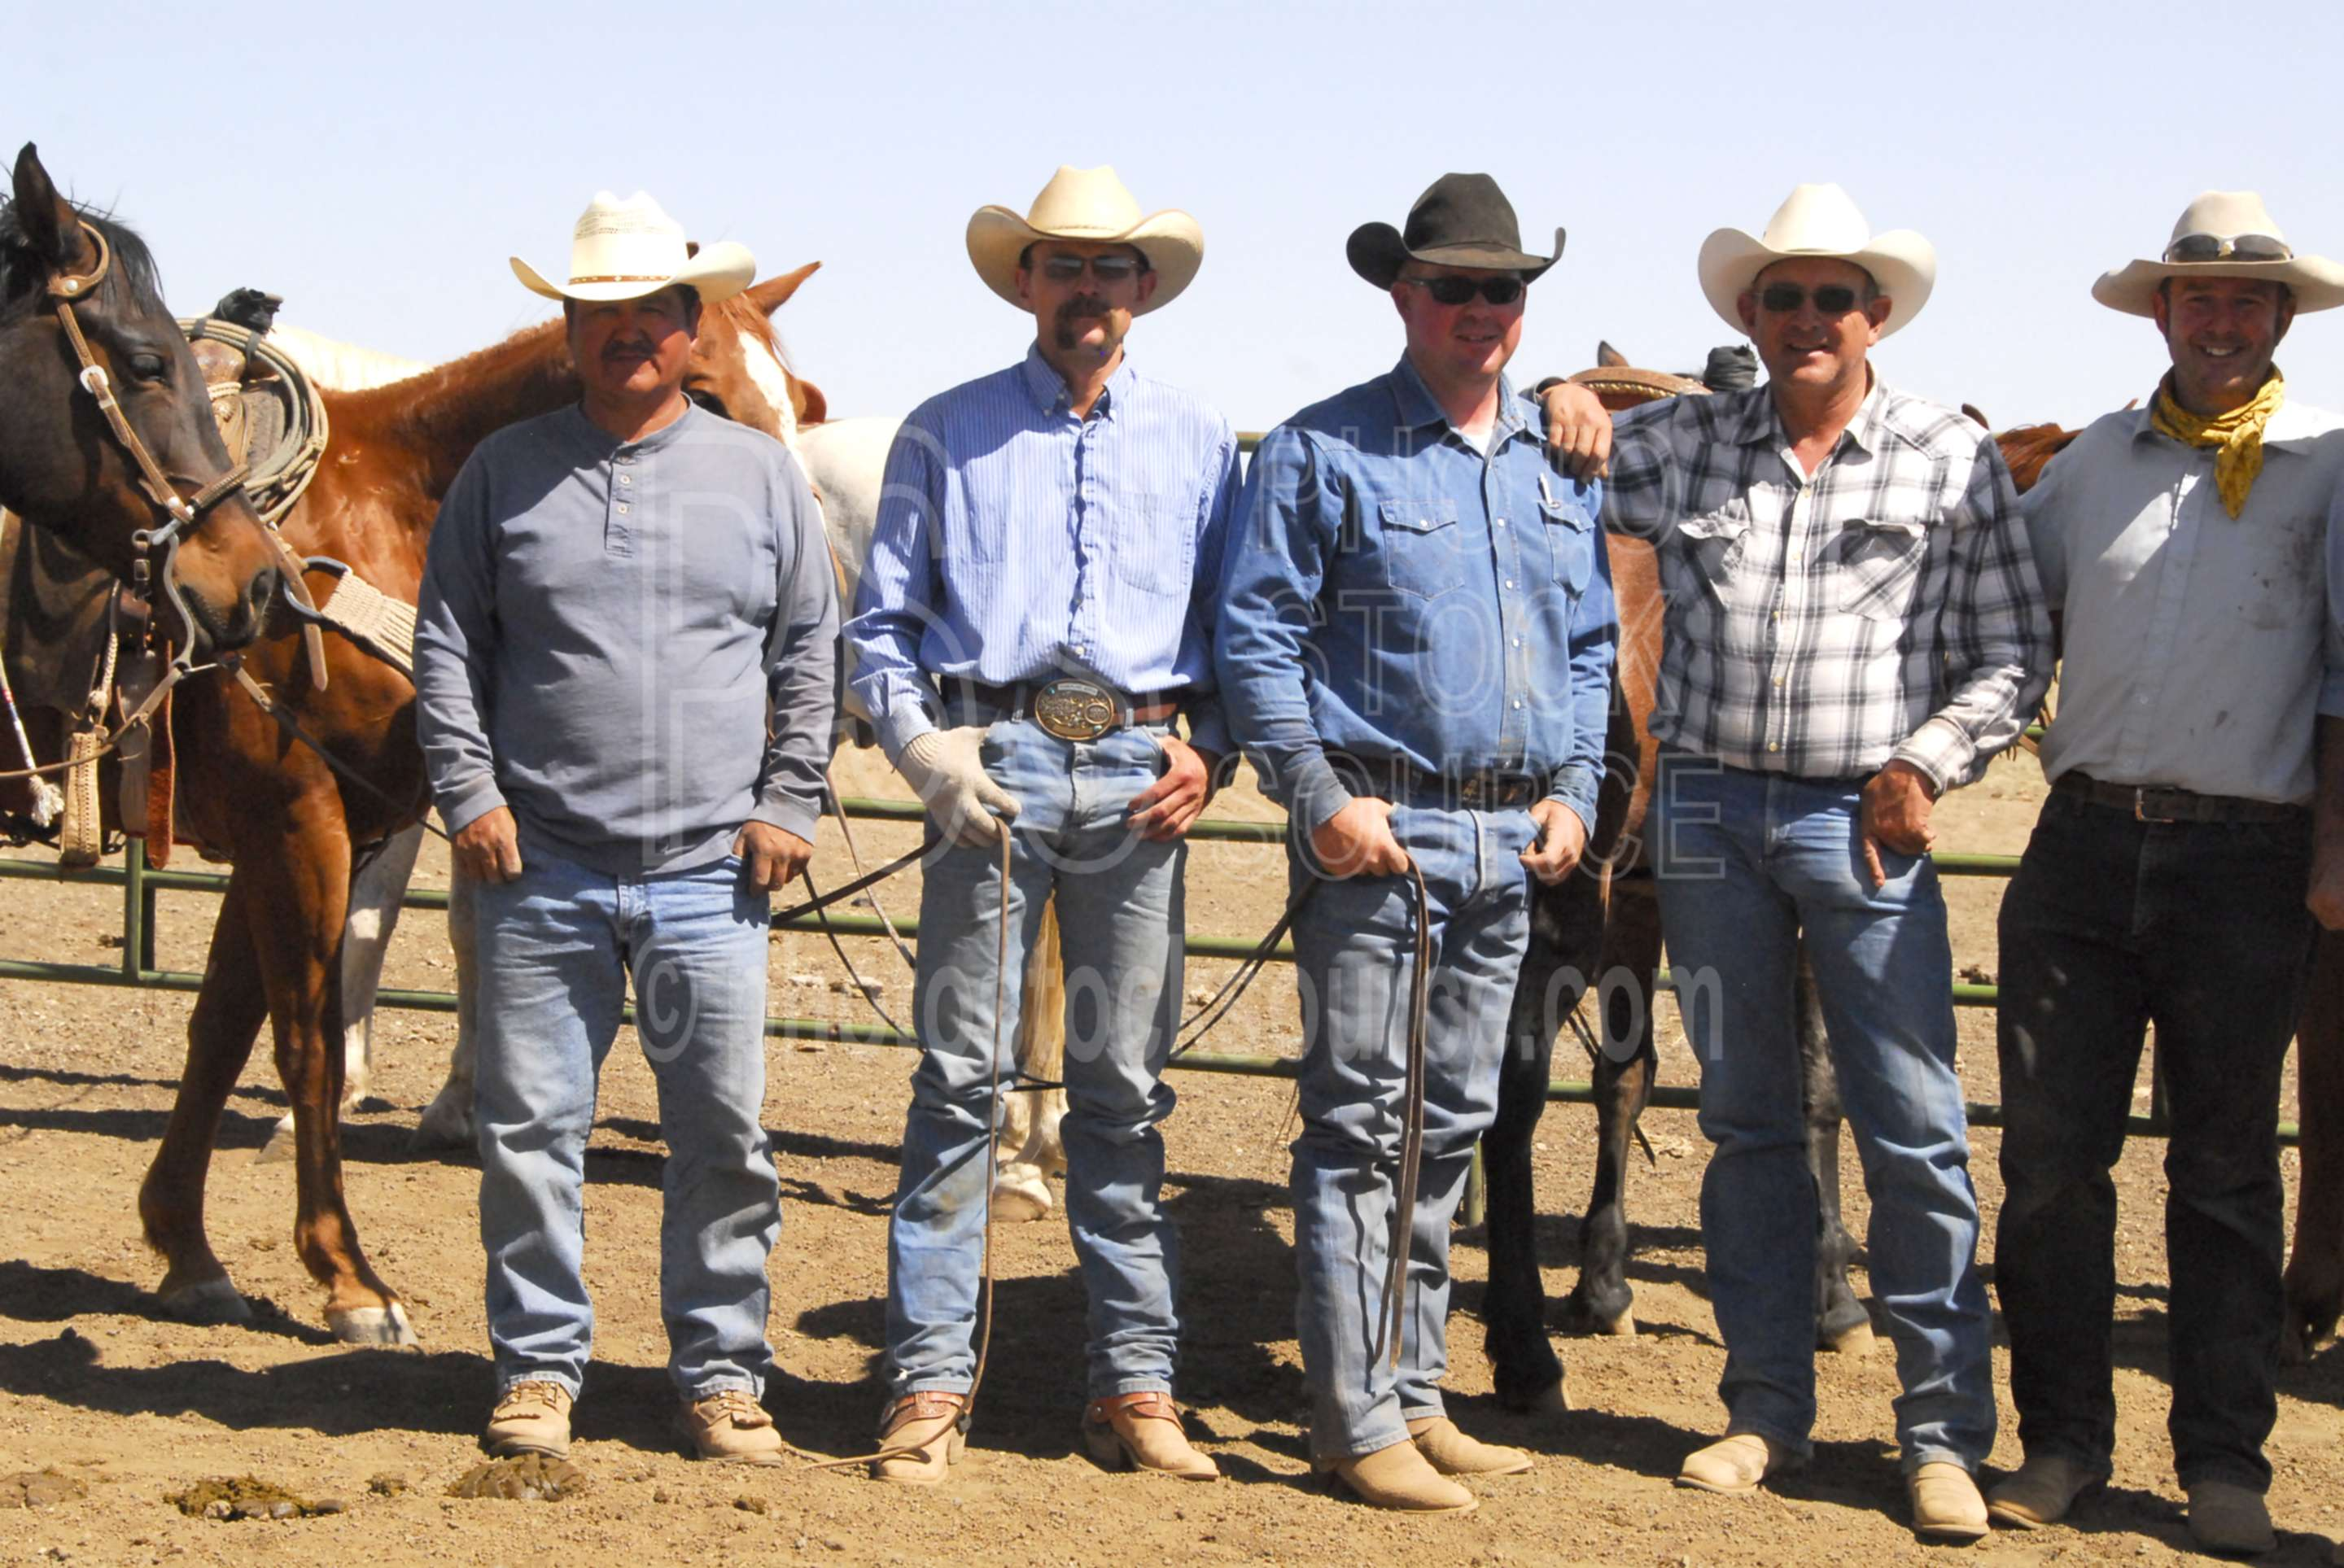 Cowboys after Work,cowboy,walking cane ranch,cattle,barry